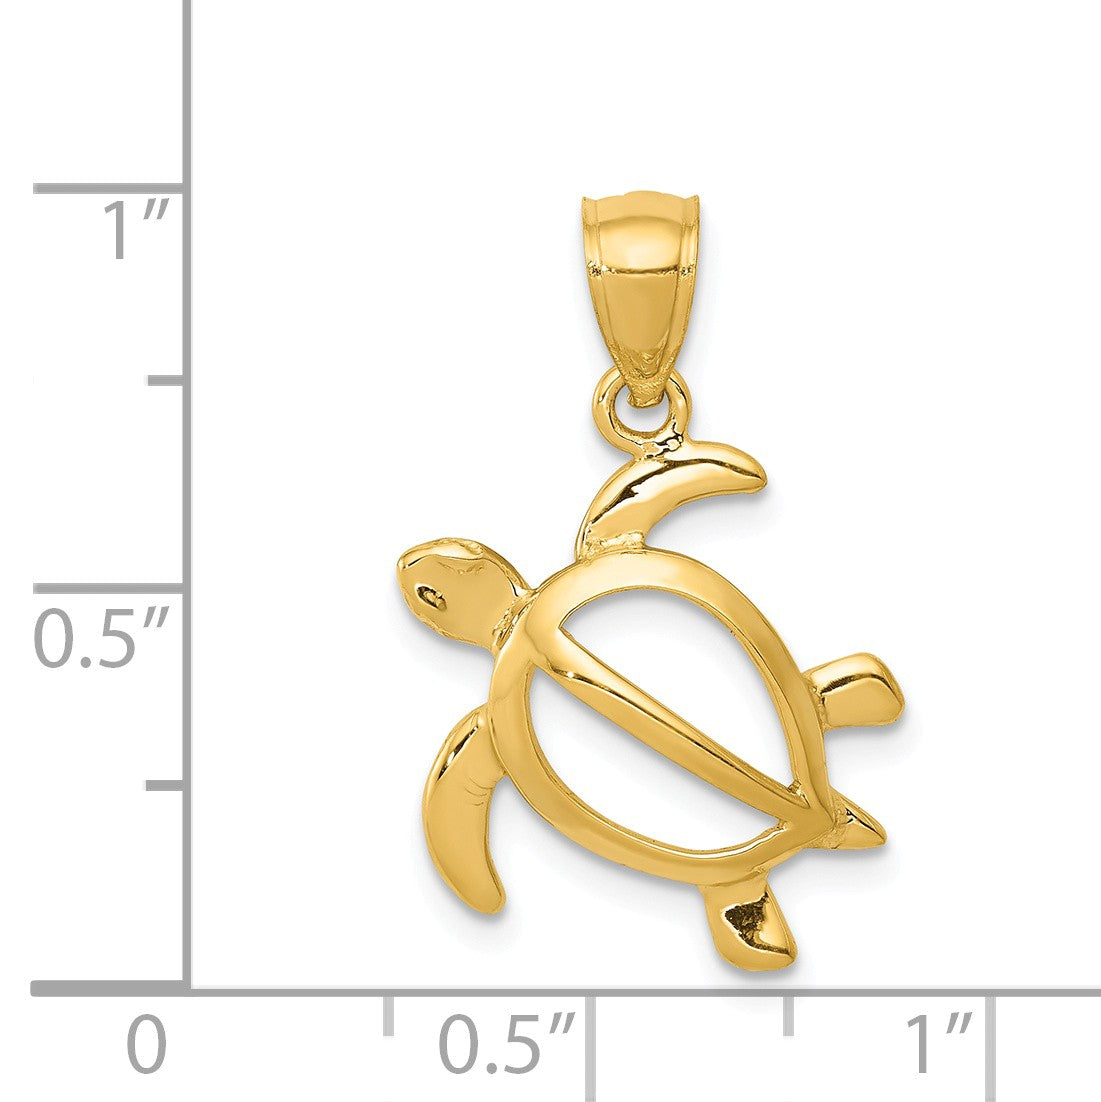 Alternate view of the 14k Yellow Gold 16mm Open Sea Turtle Pendant by The Black Bow Jewelry Co.